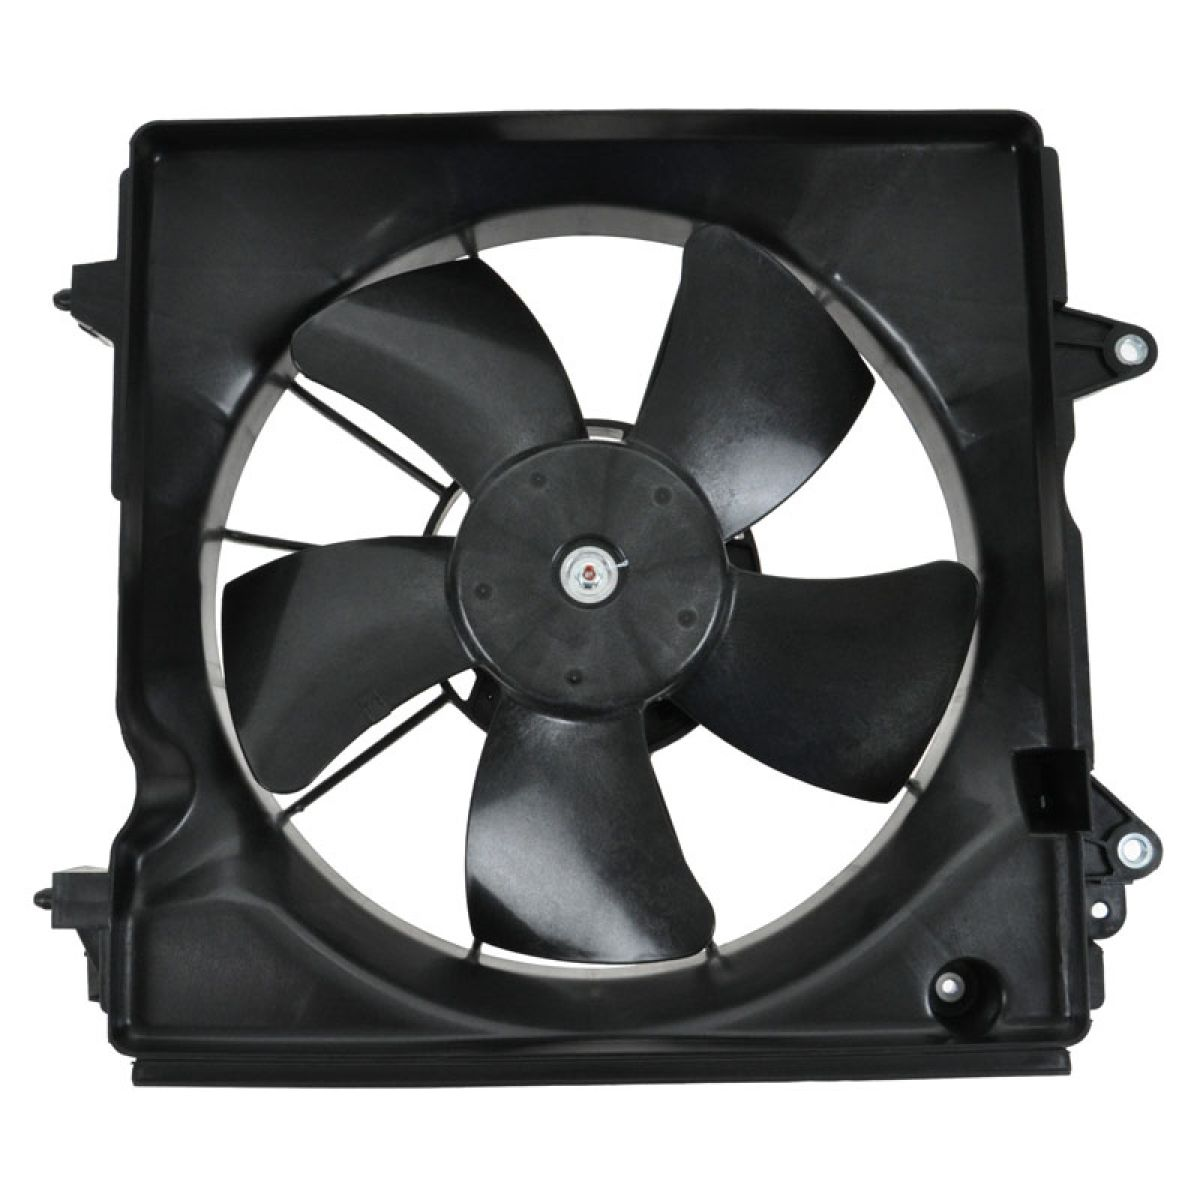 A//C AC Air Conditioner Condenser Cooling Fan Assembly for 12 Honda Civic